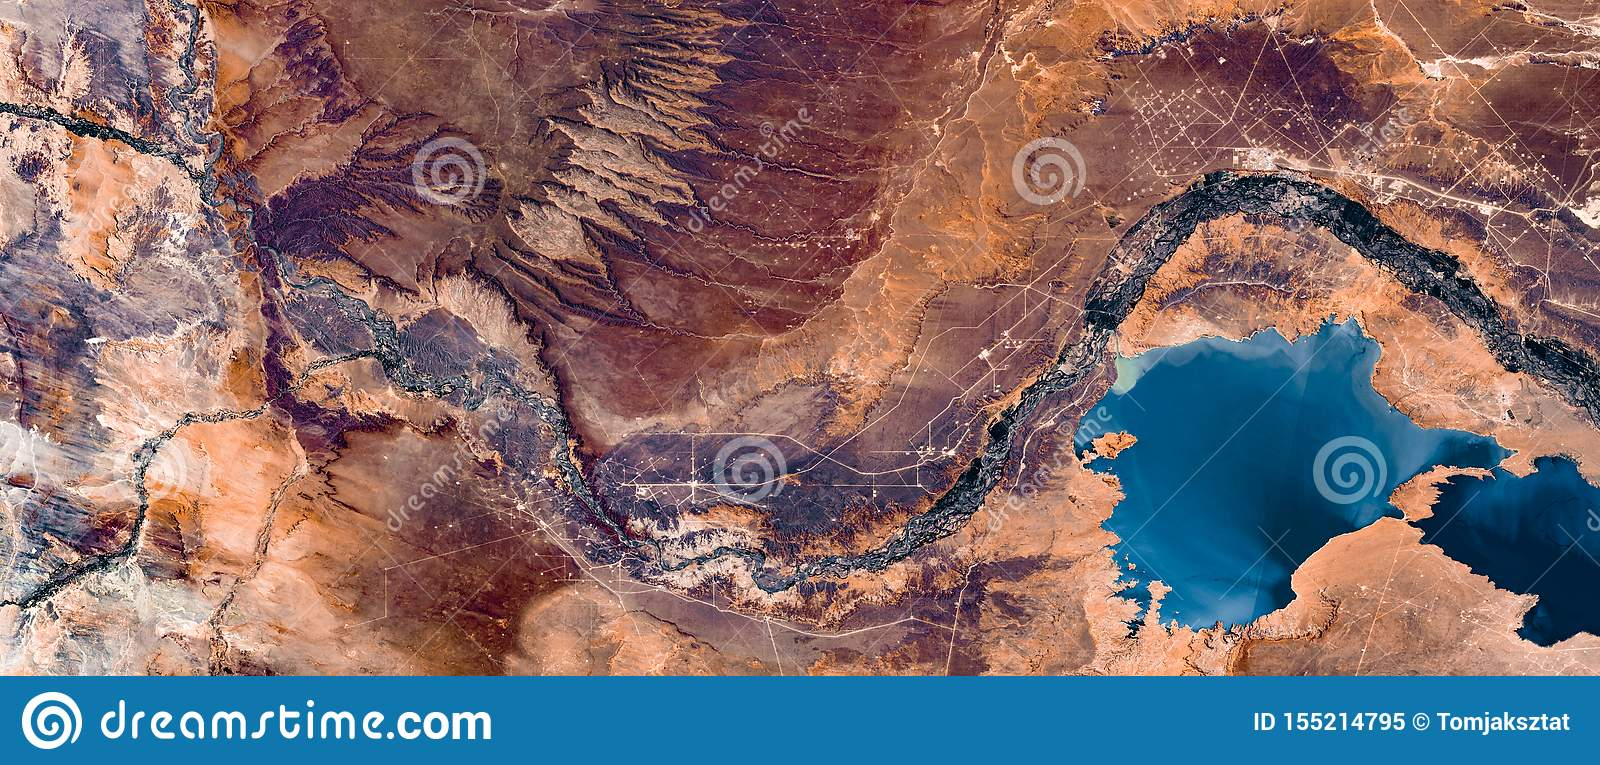 High resolution satellite image of river and Andes mountains from above, Neuquen, Argentina, natural background texture, aerial